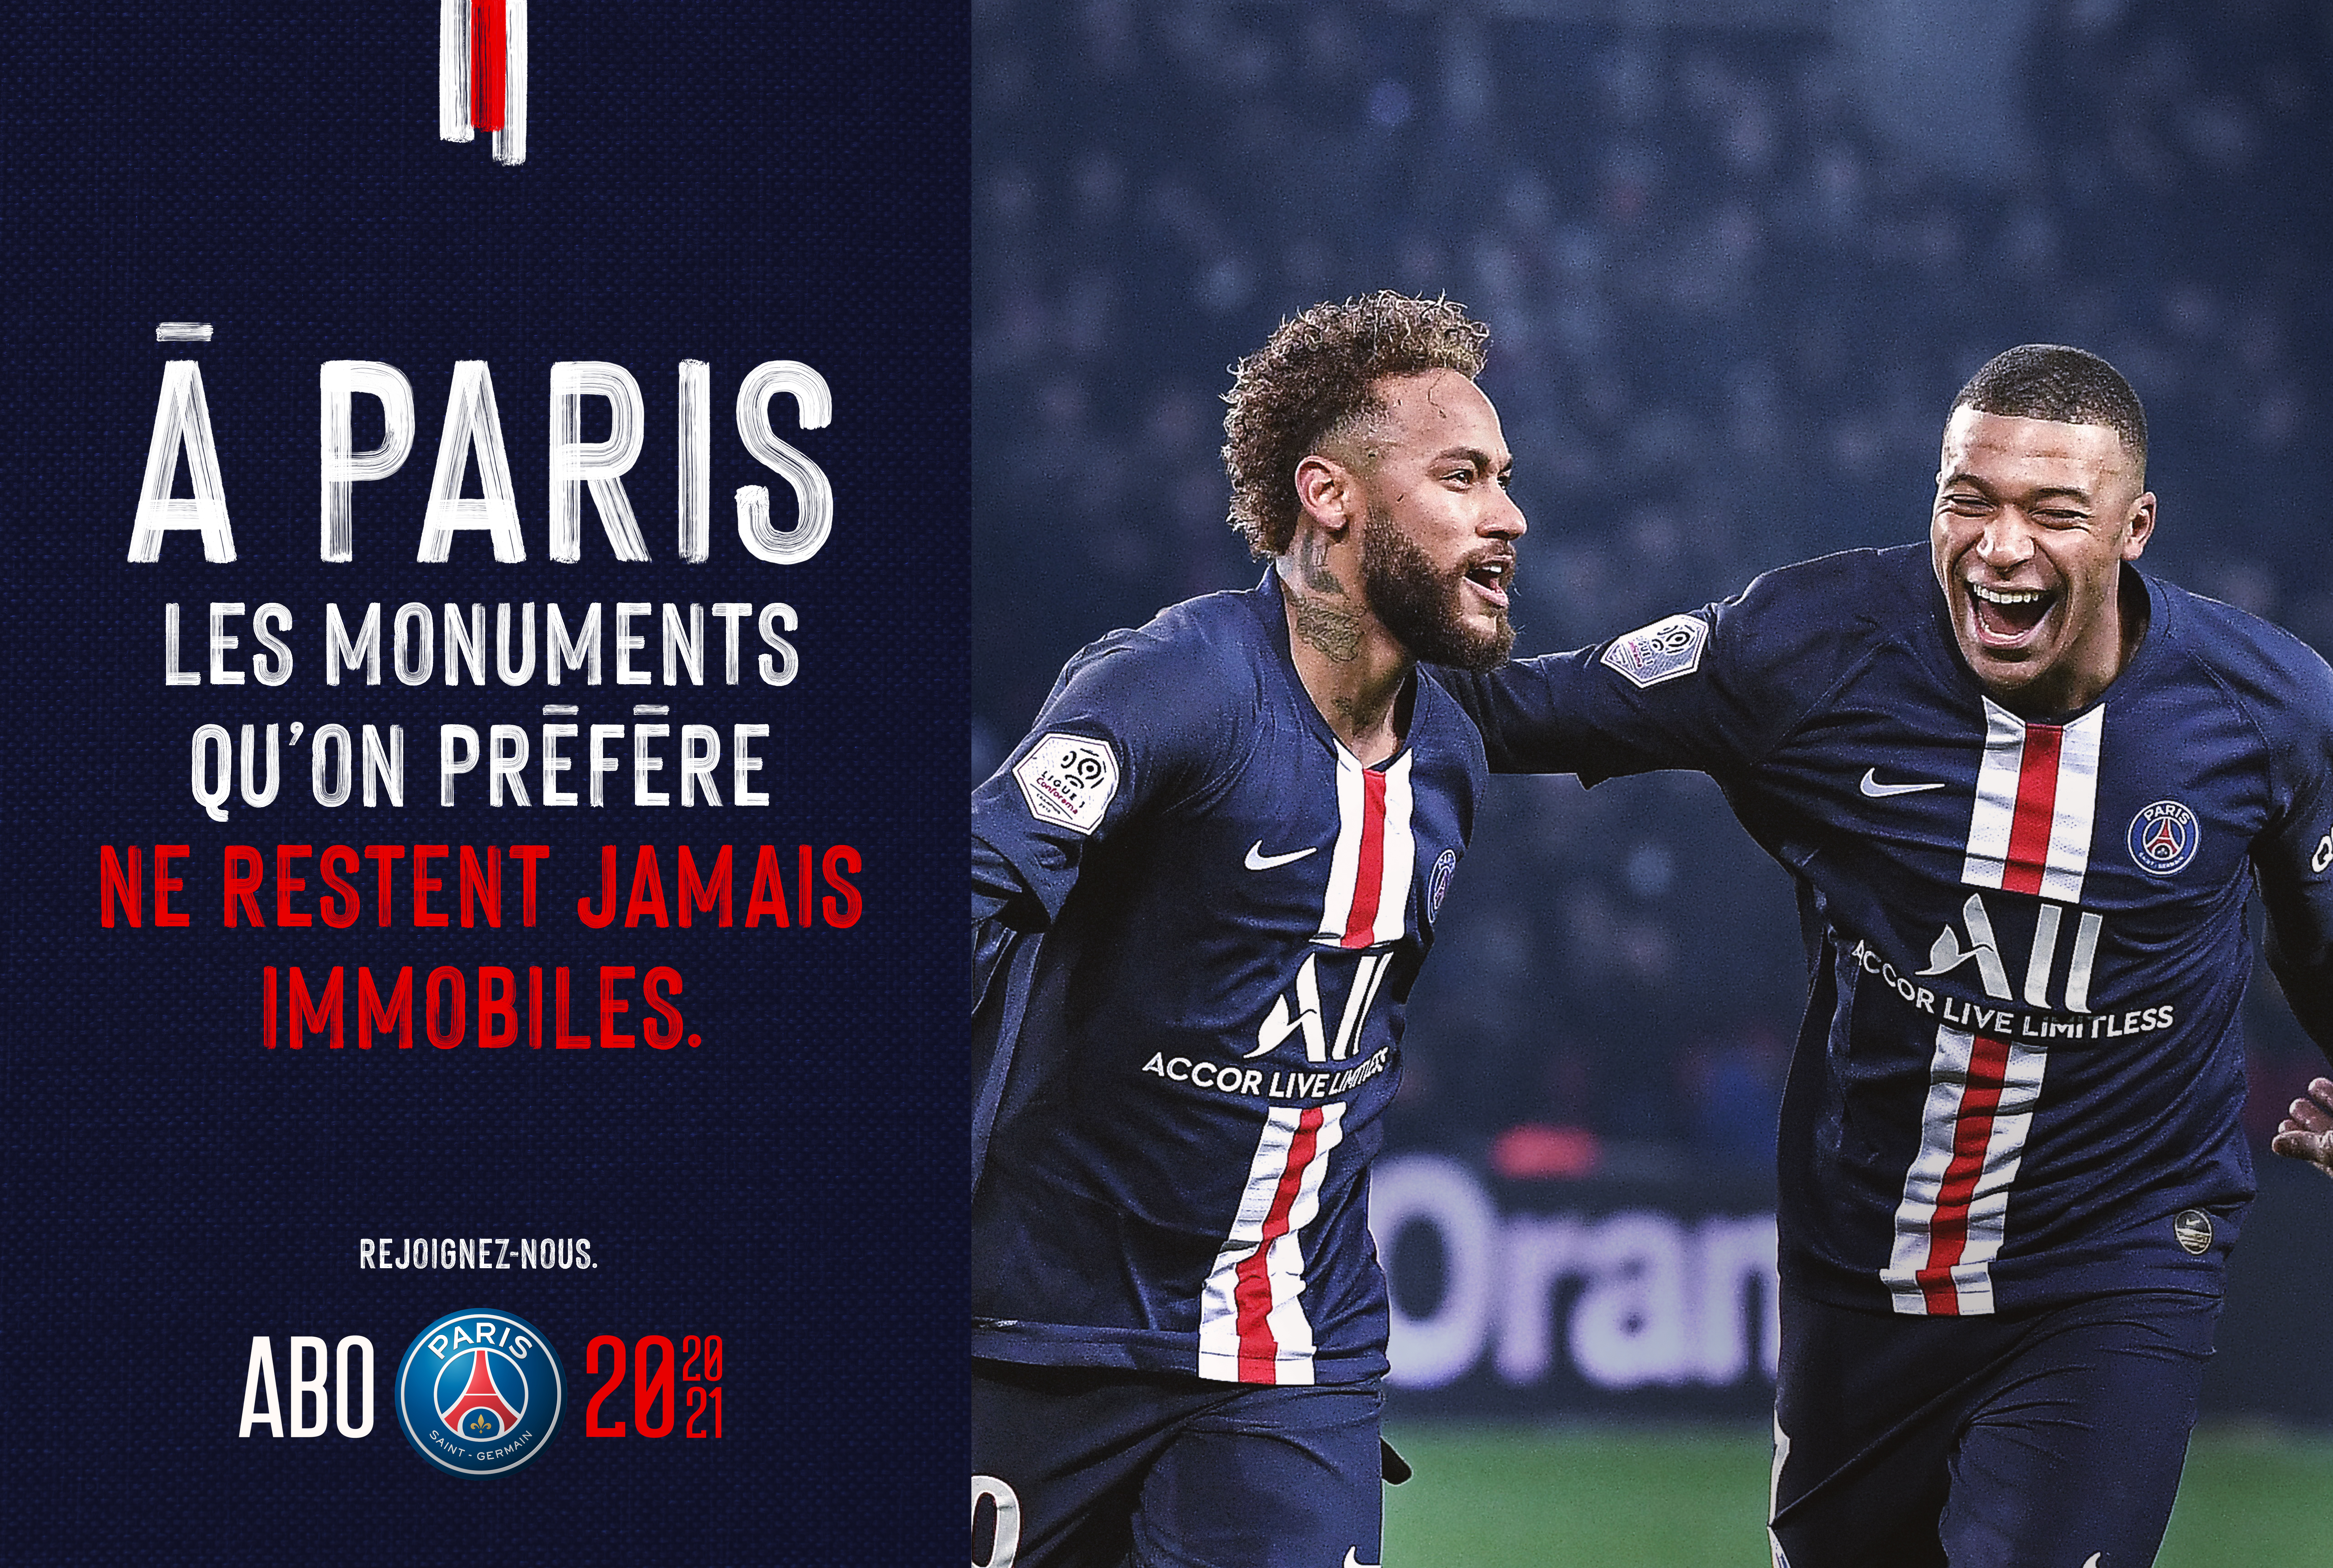 Visuel_neymar_mbappe_campagne_communication_marketing_abonnement_paris_saint_germain_football_psg_lafourmi